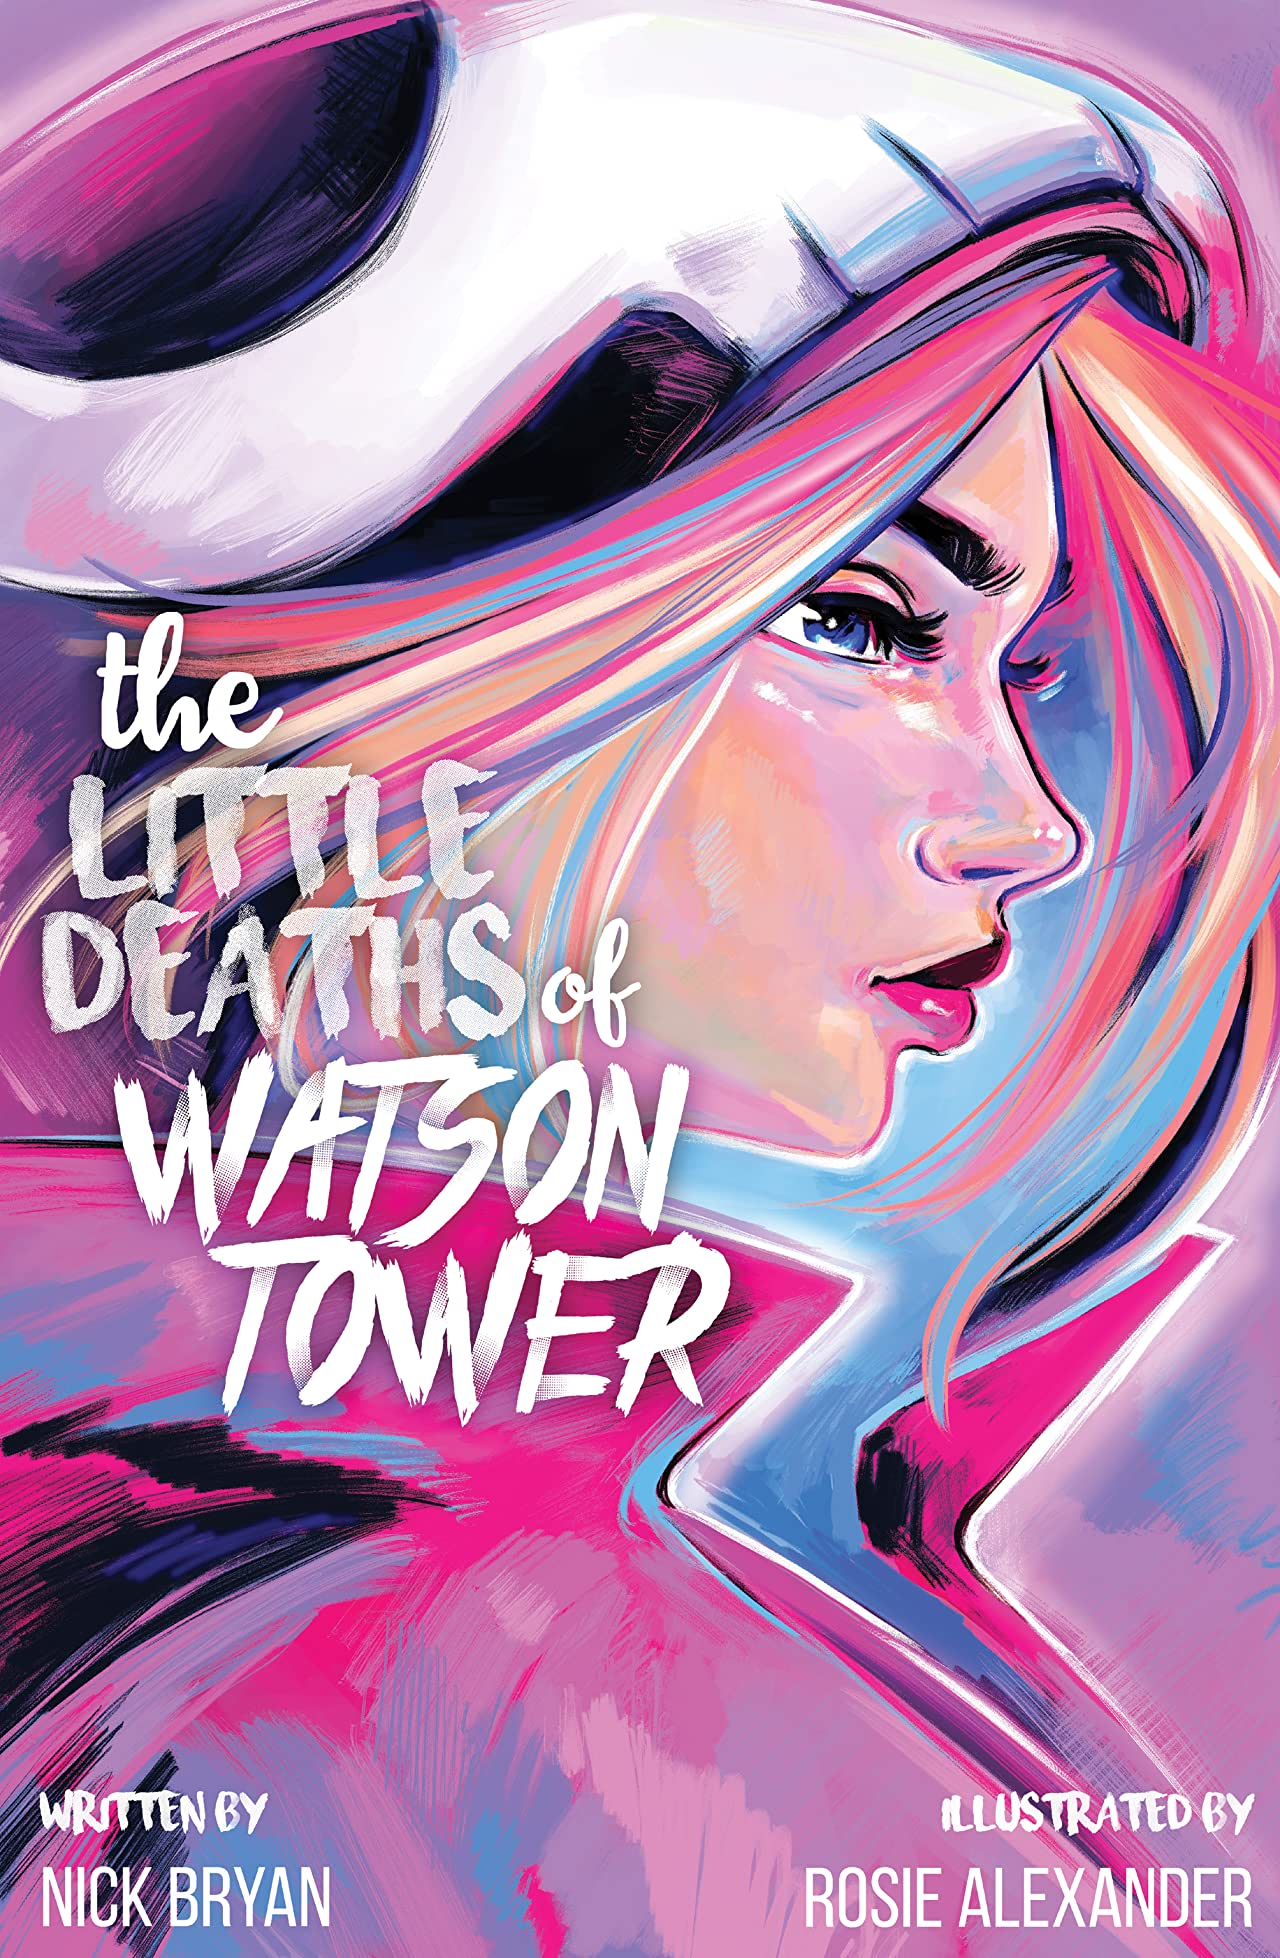 The Little Deaths of Watson Tower